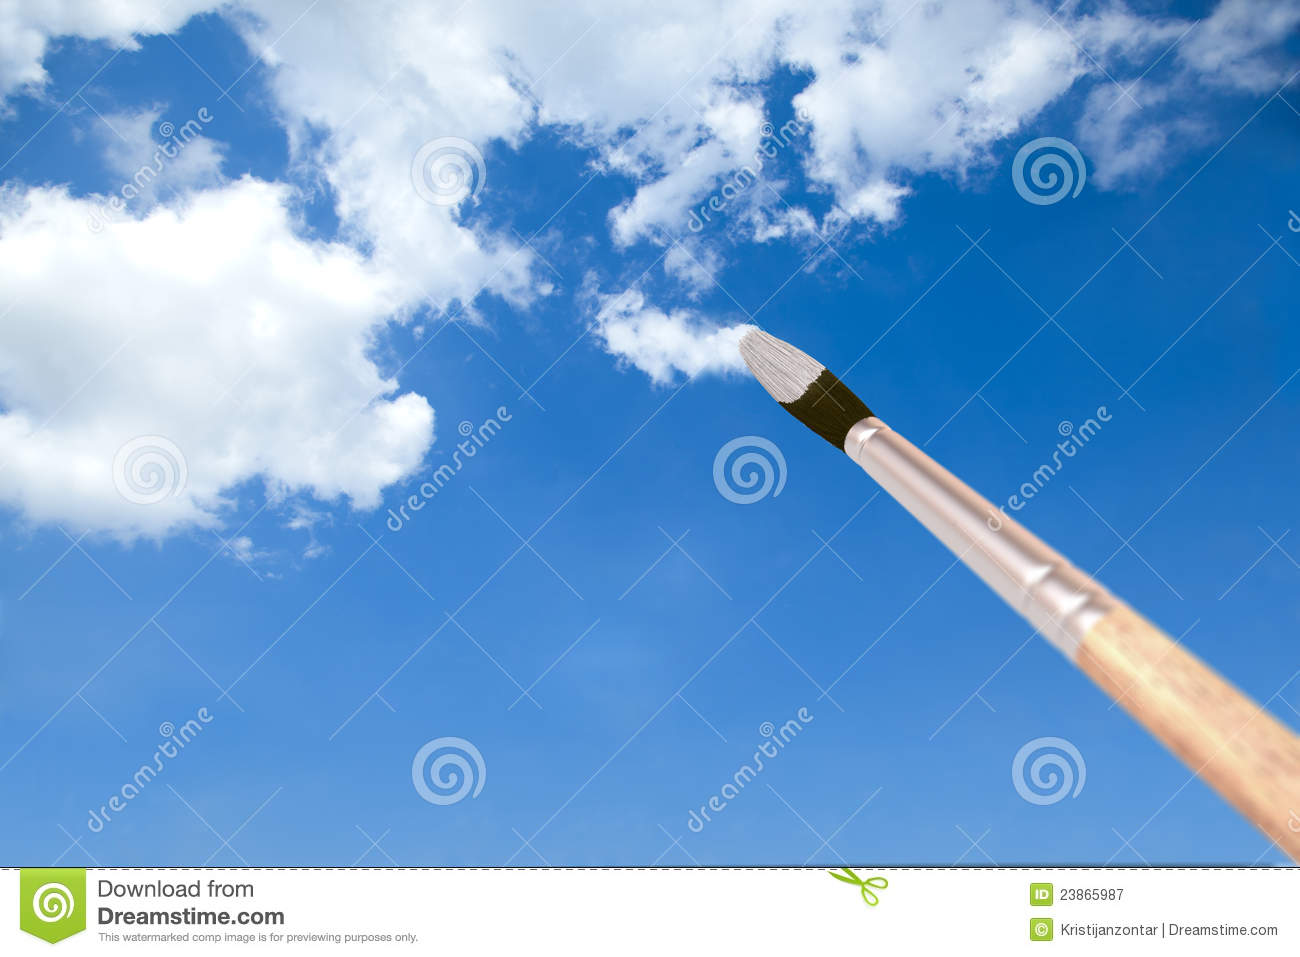 painting clouds with a paintbrush stock image image of dream